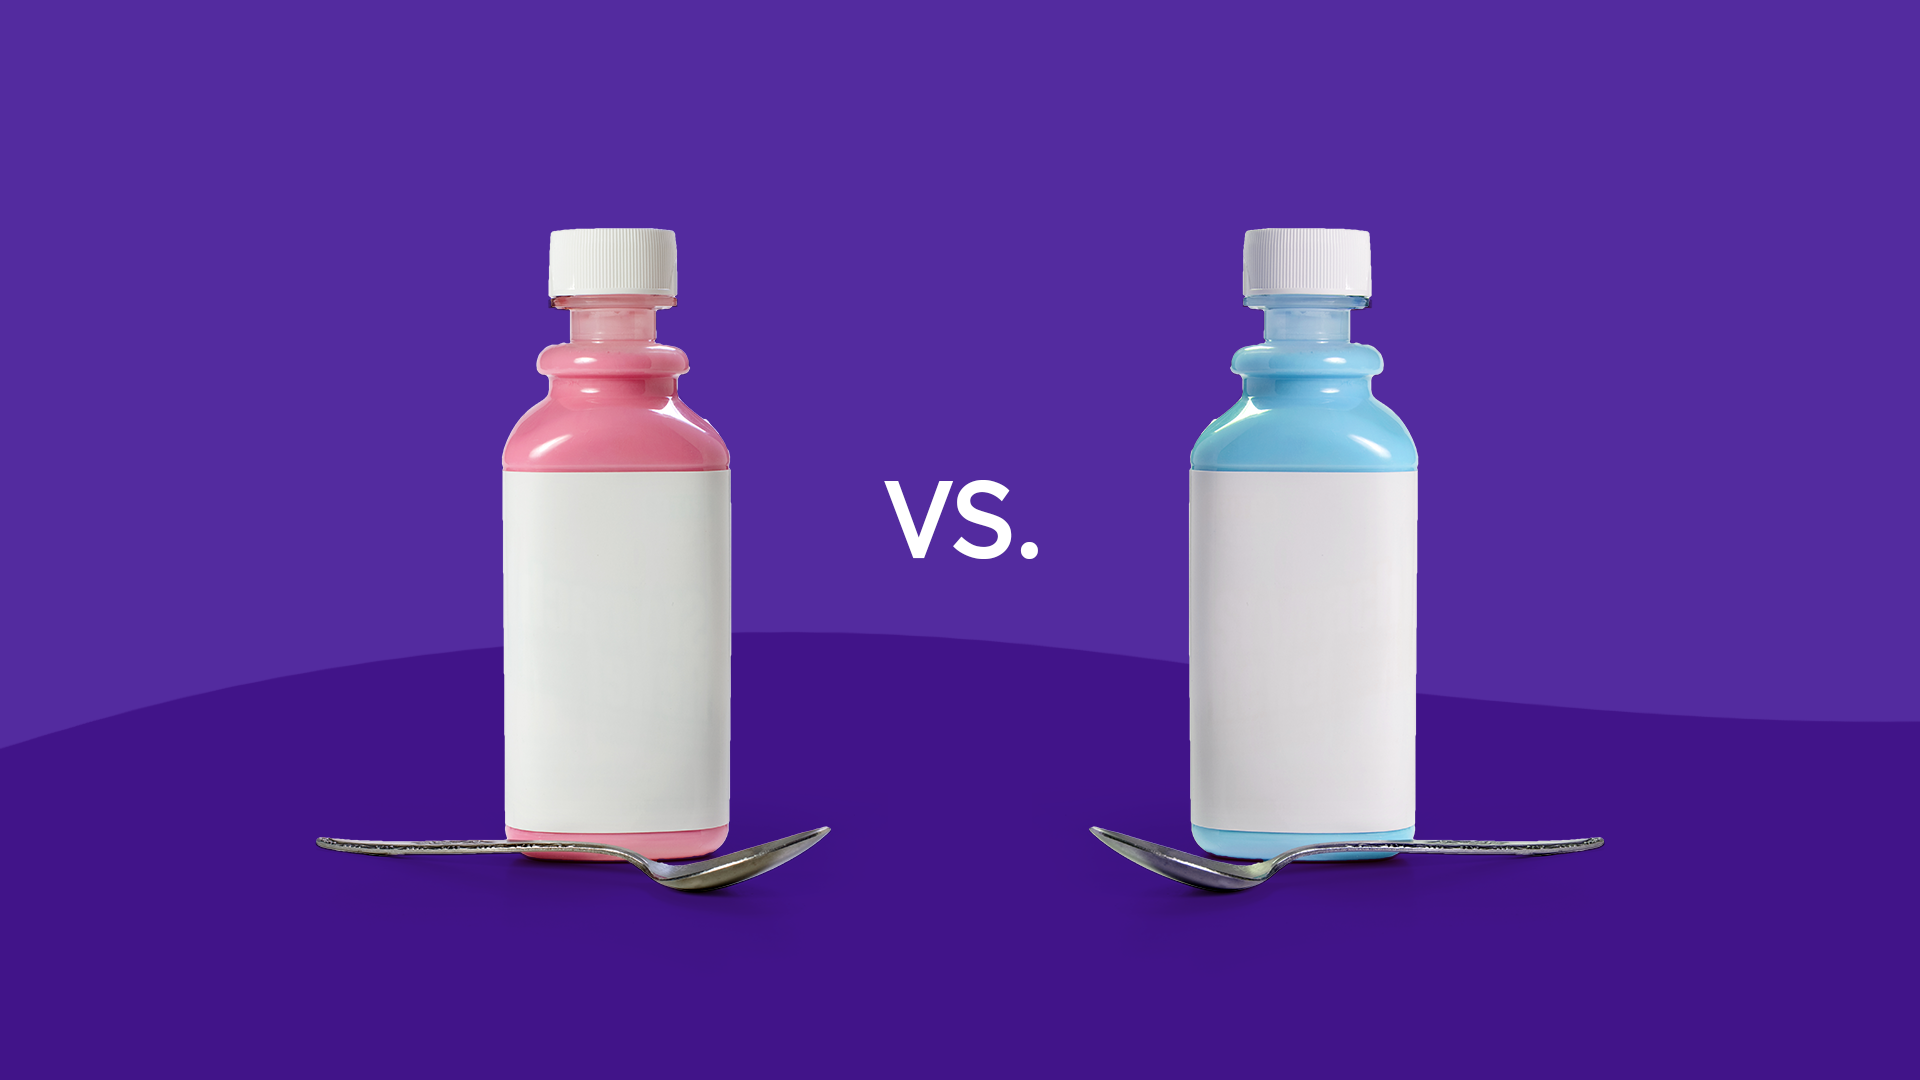 Famotidine vs. omeprazole: Differences, similarities, and which is better for you